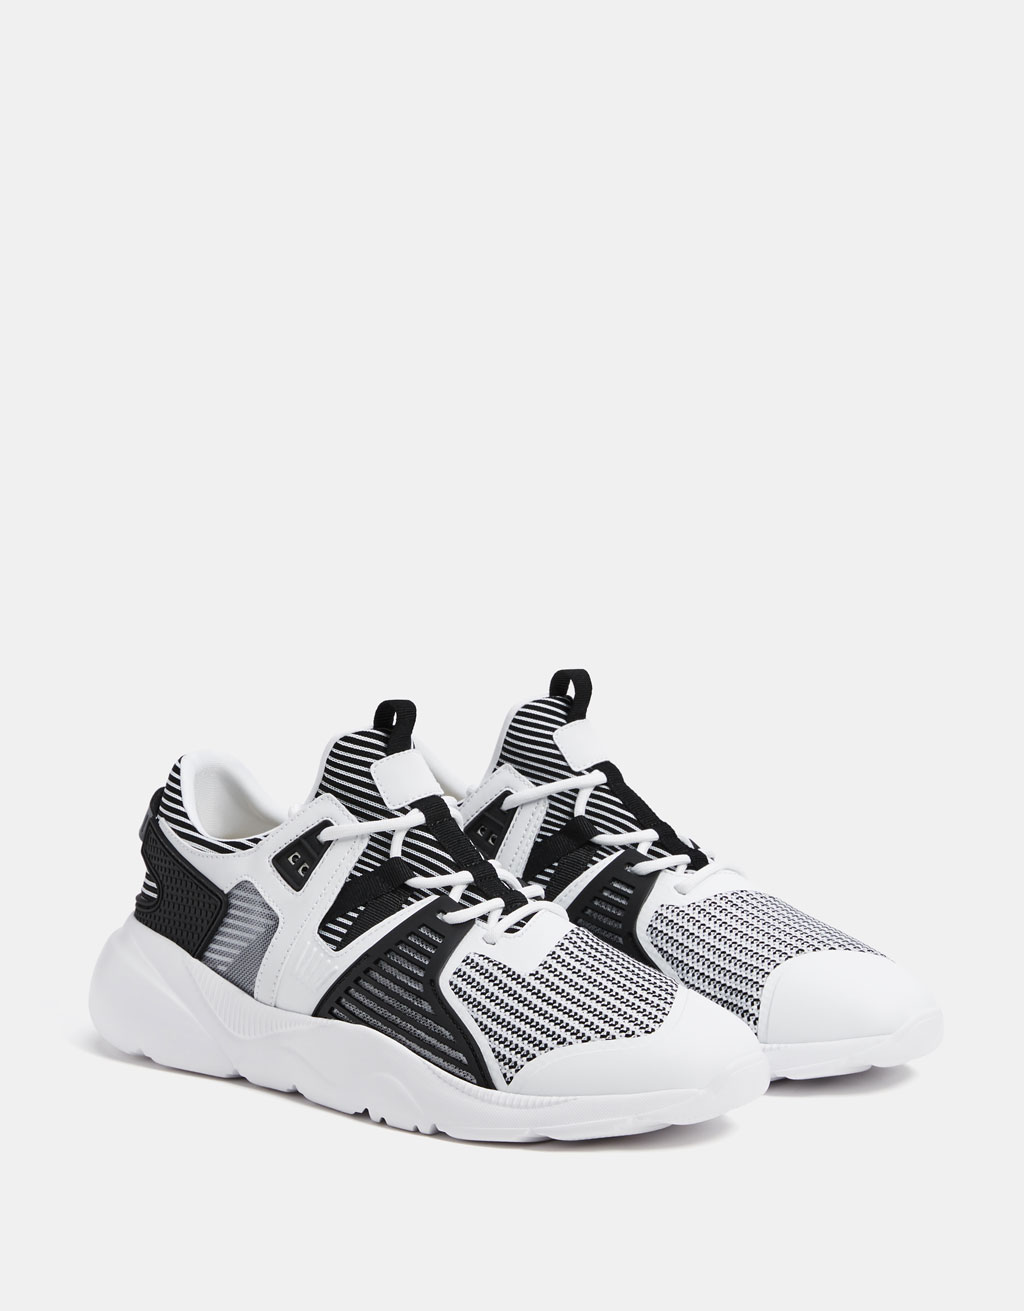 Contrasting two-tone technical sneakers